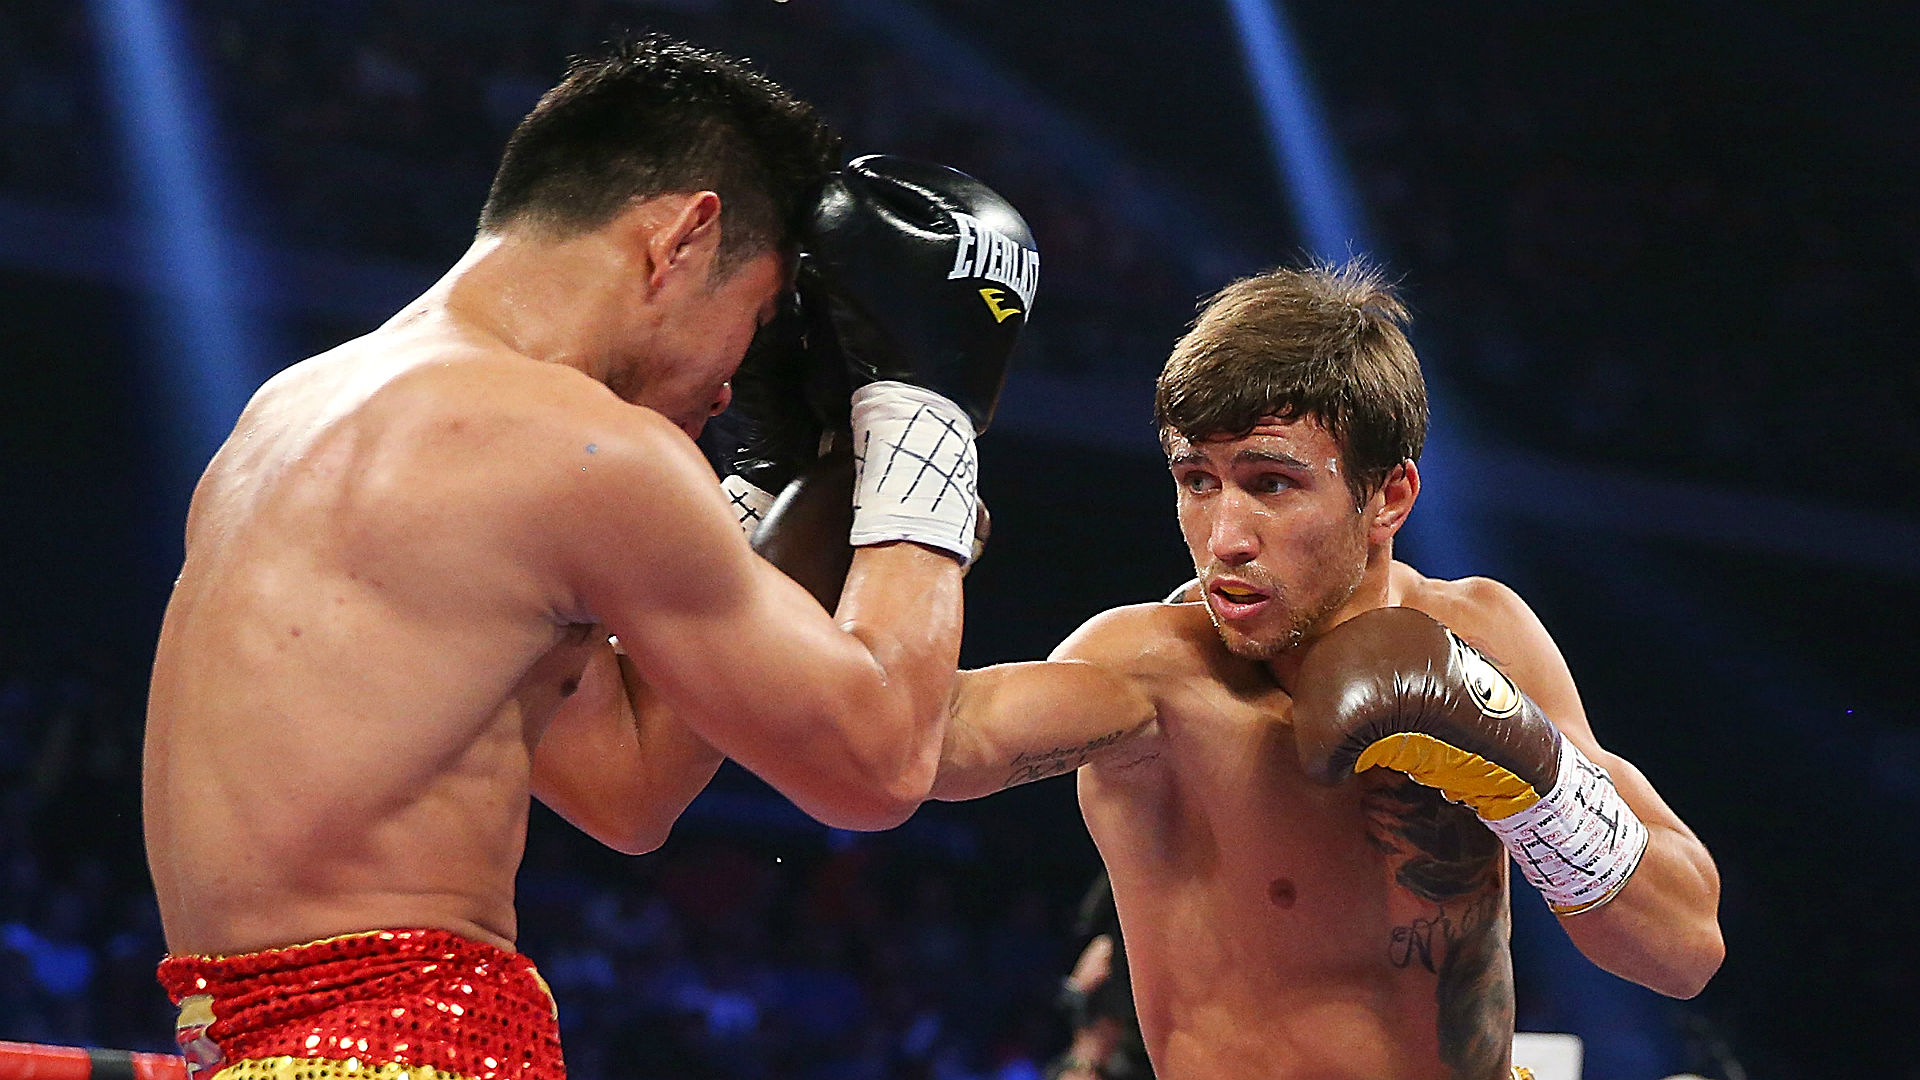 Mayweather vs. Pacquiao undercard headlined by Vasyl Lomachenko